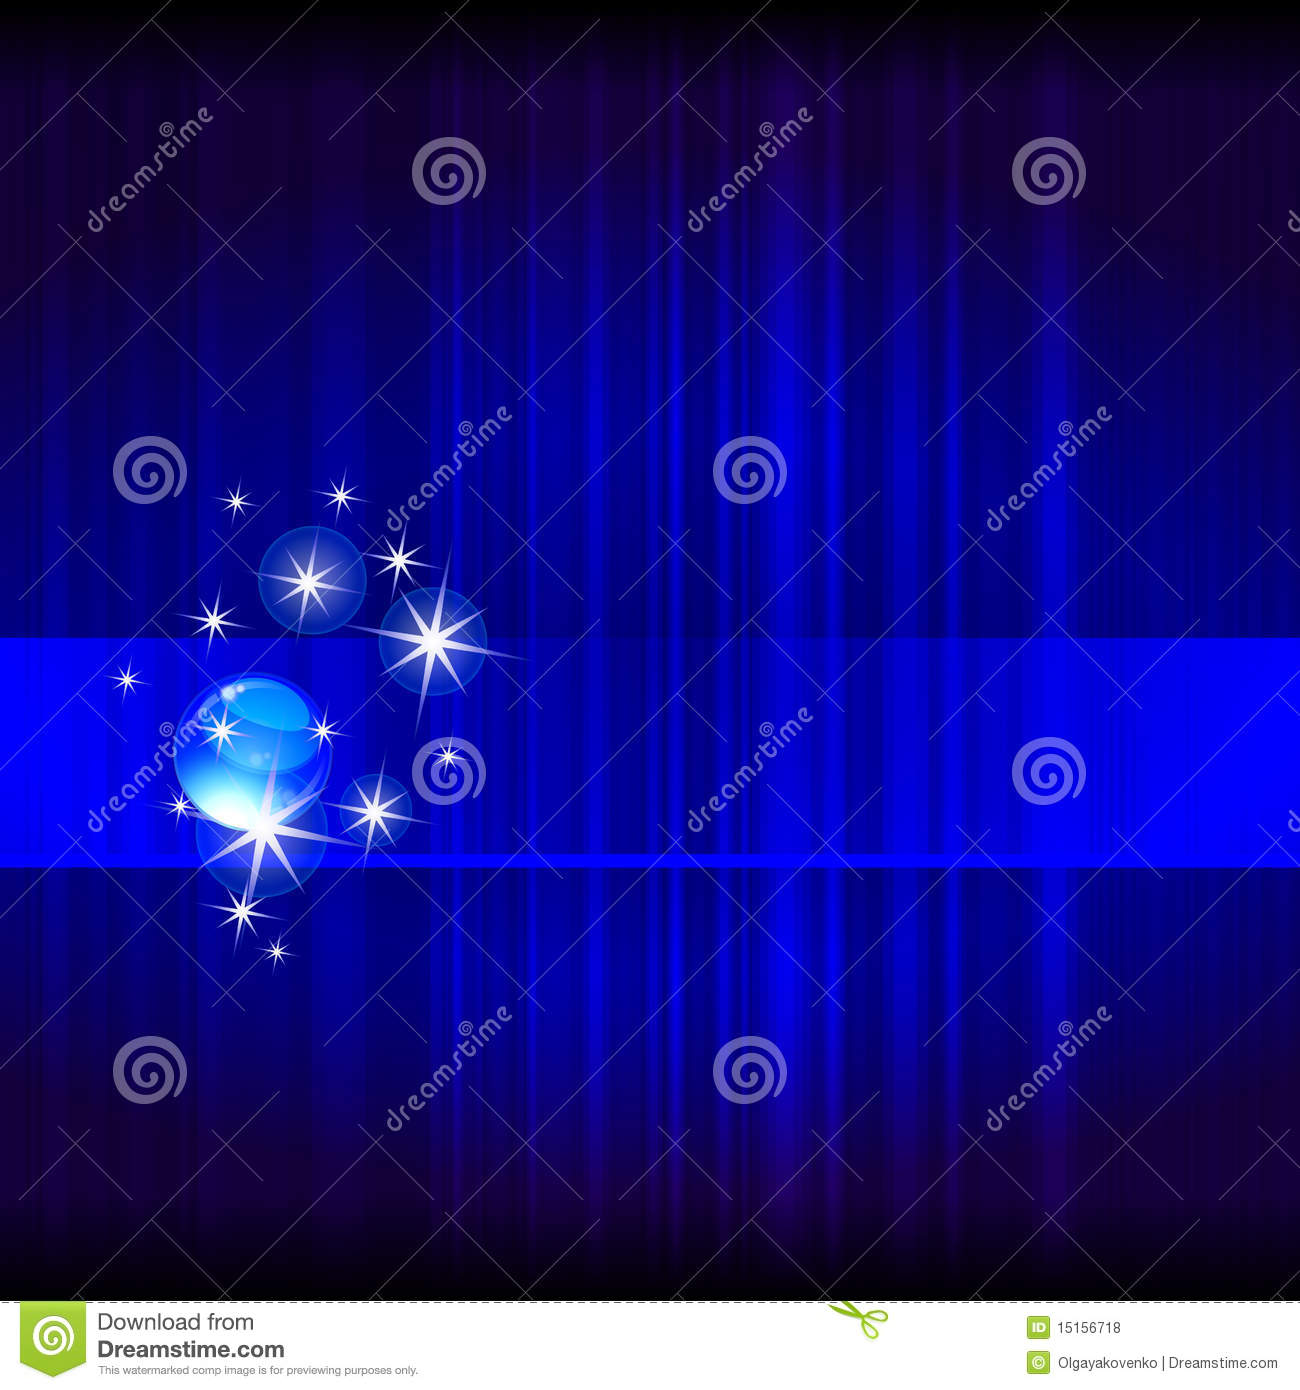 Abstract blue backgrounds